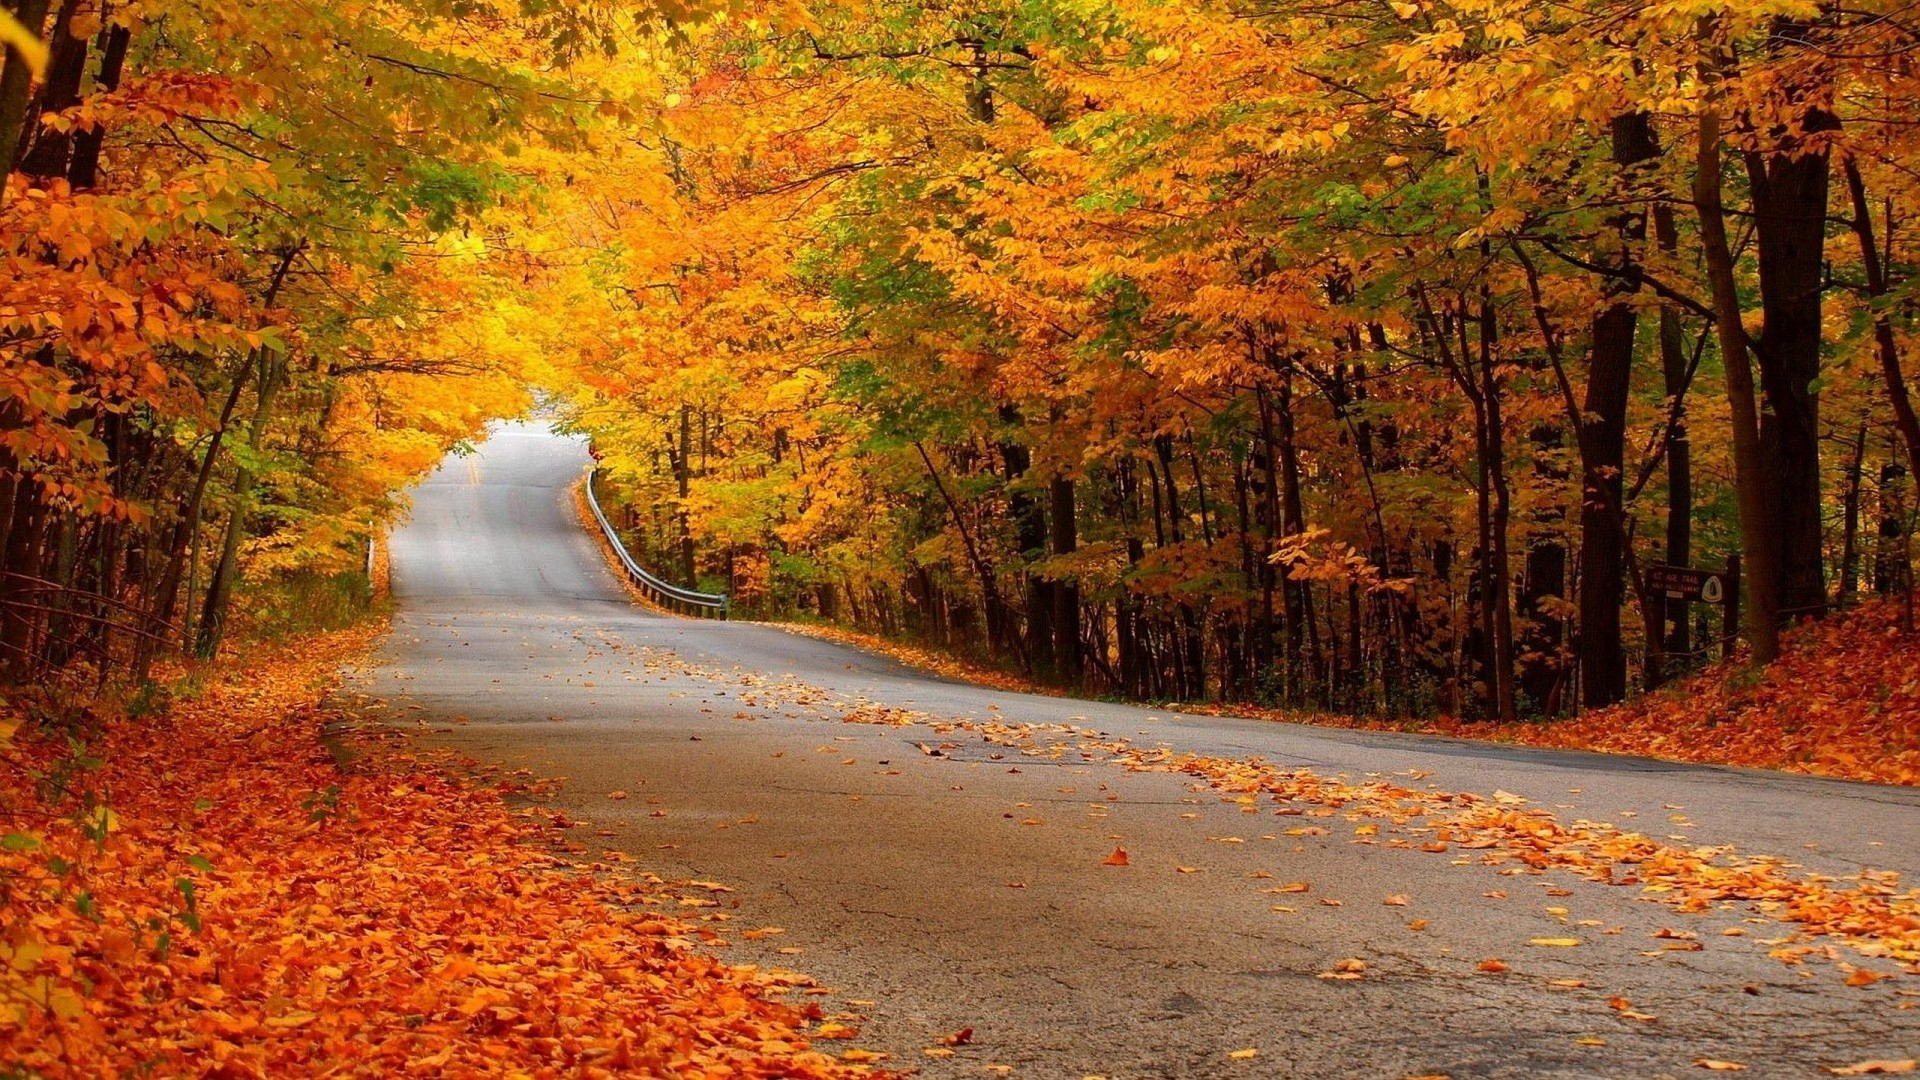 1920x1080 0  Autumn Forest Scenery Wallpaper  Autumn Forest Street  Wallpaper